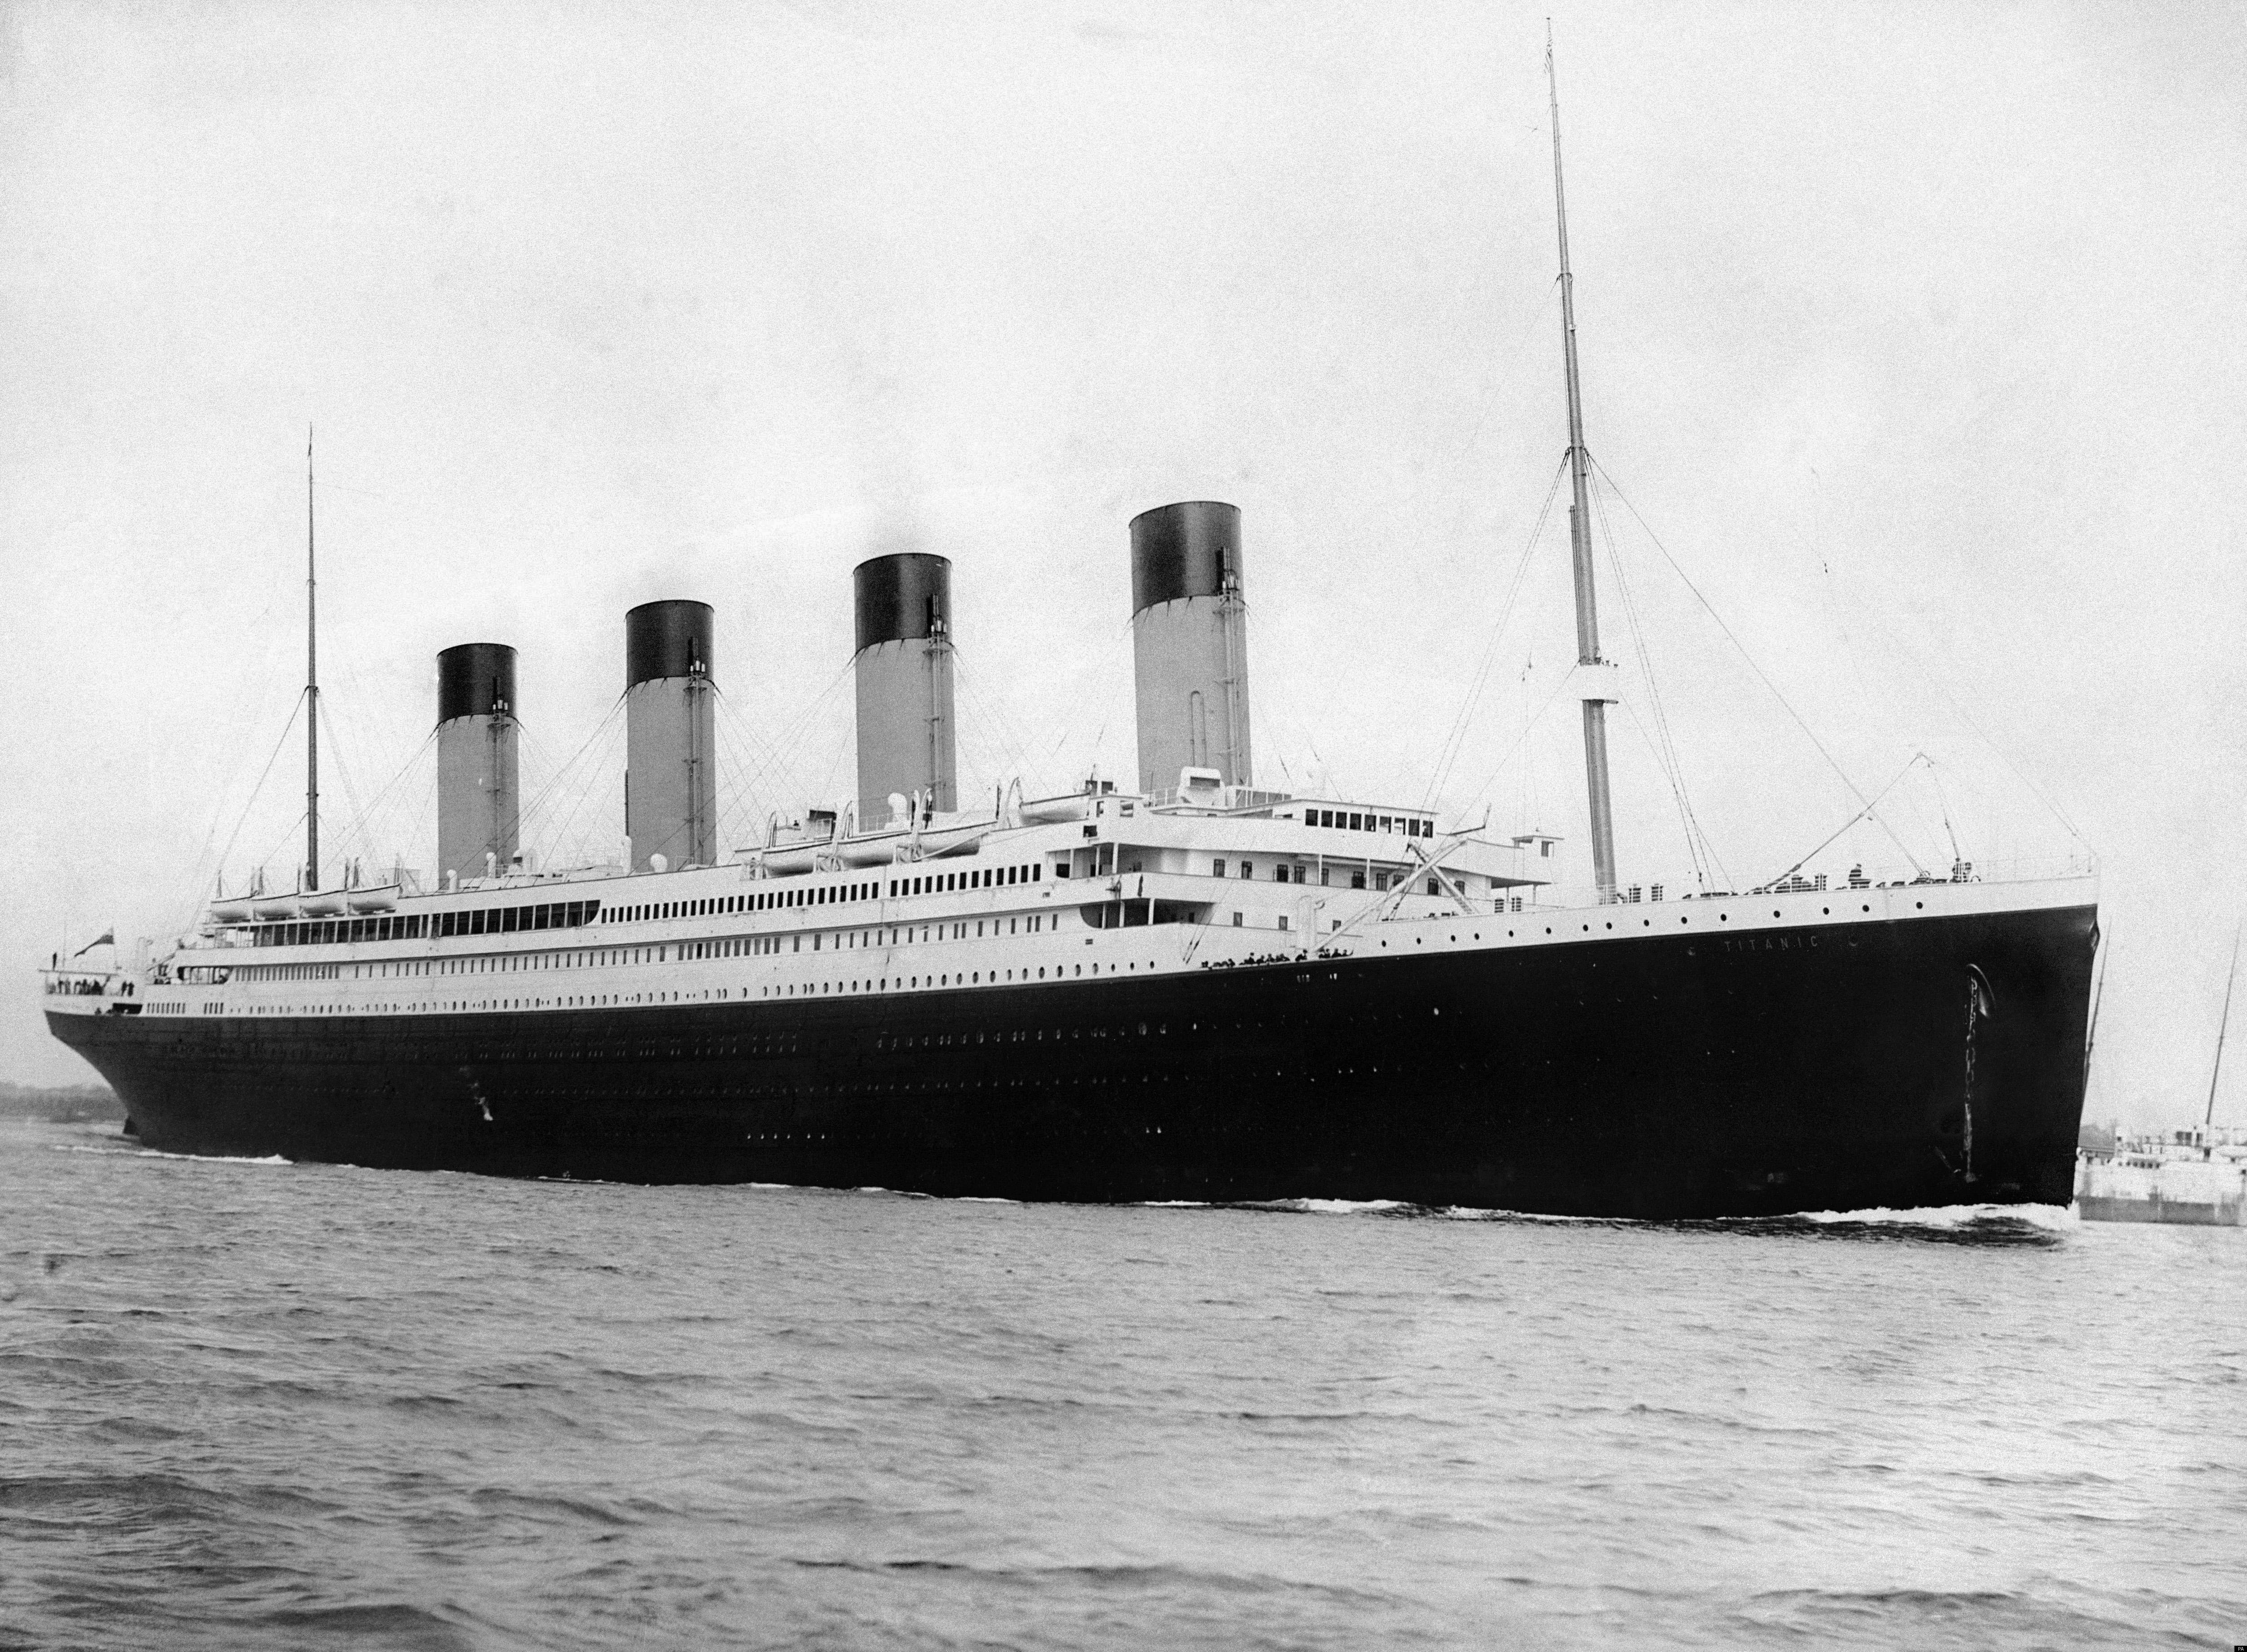 The sinking of the Titanic - 99 years on